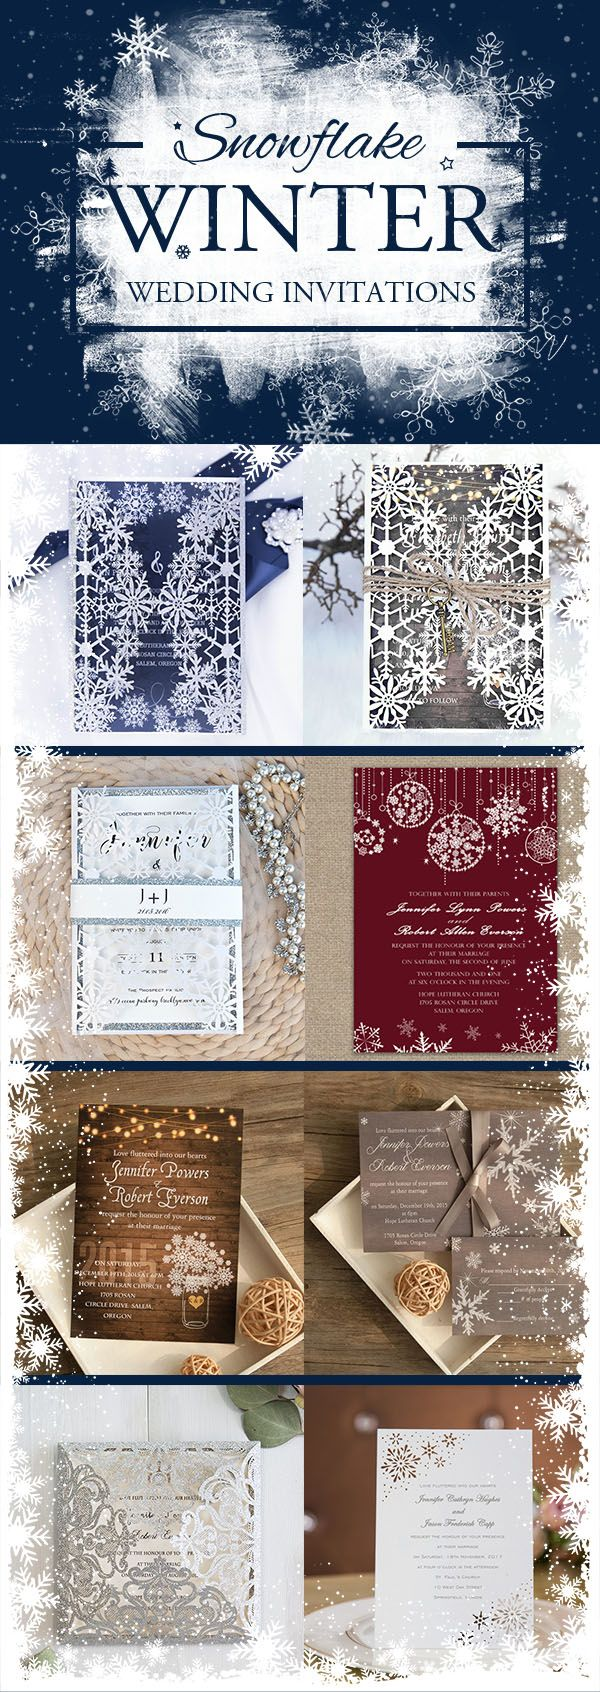 98 Best Winter Weddings Images On Pinterest Weddings Winter Barn